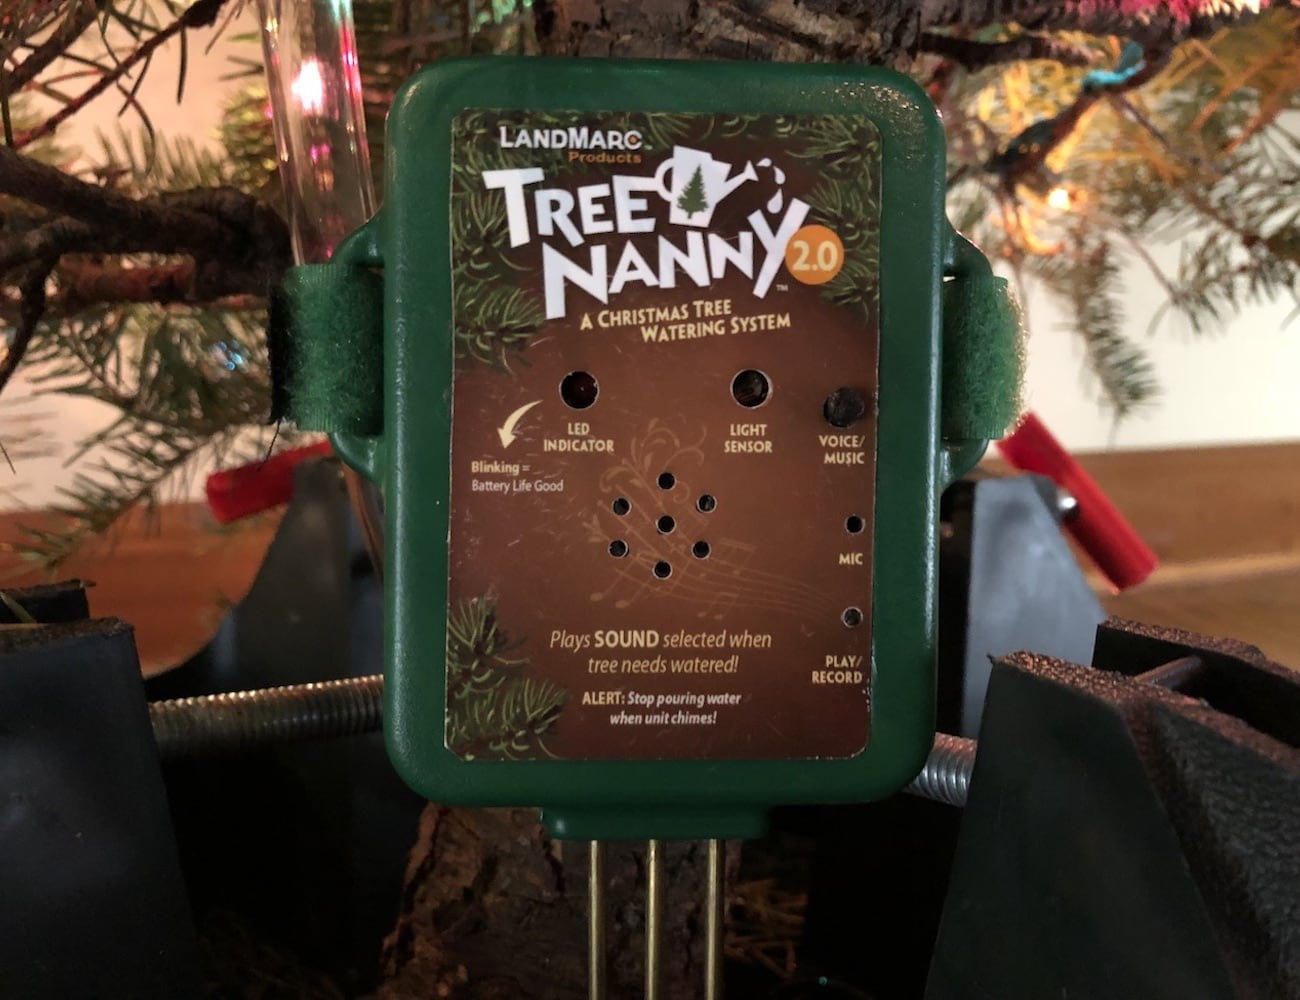 Tree Nanny 2.0 makes it easy to look after your Christmas tree